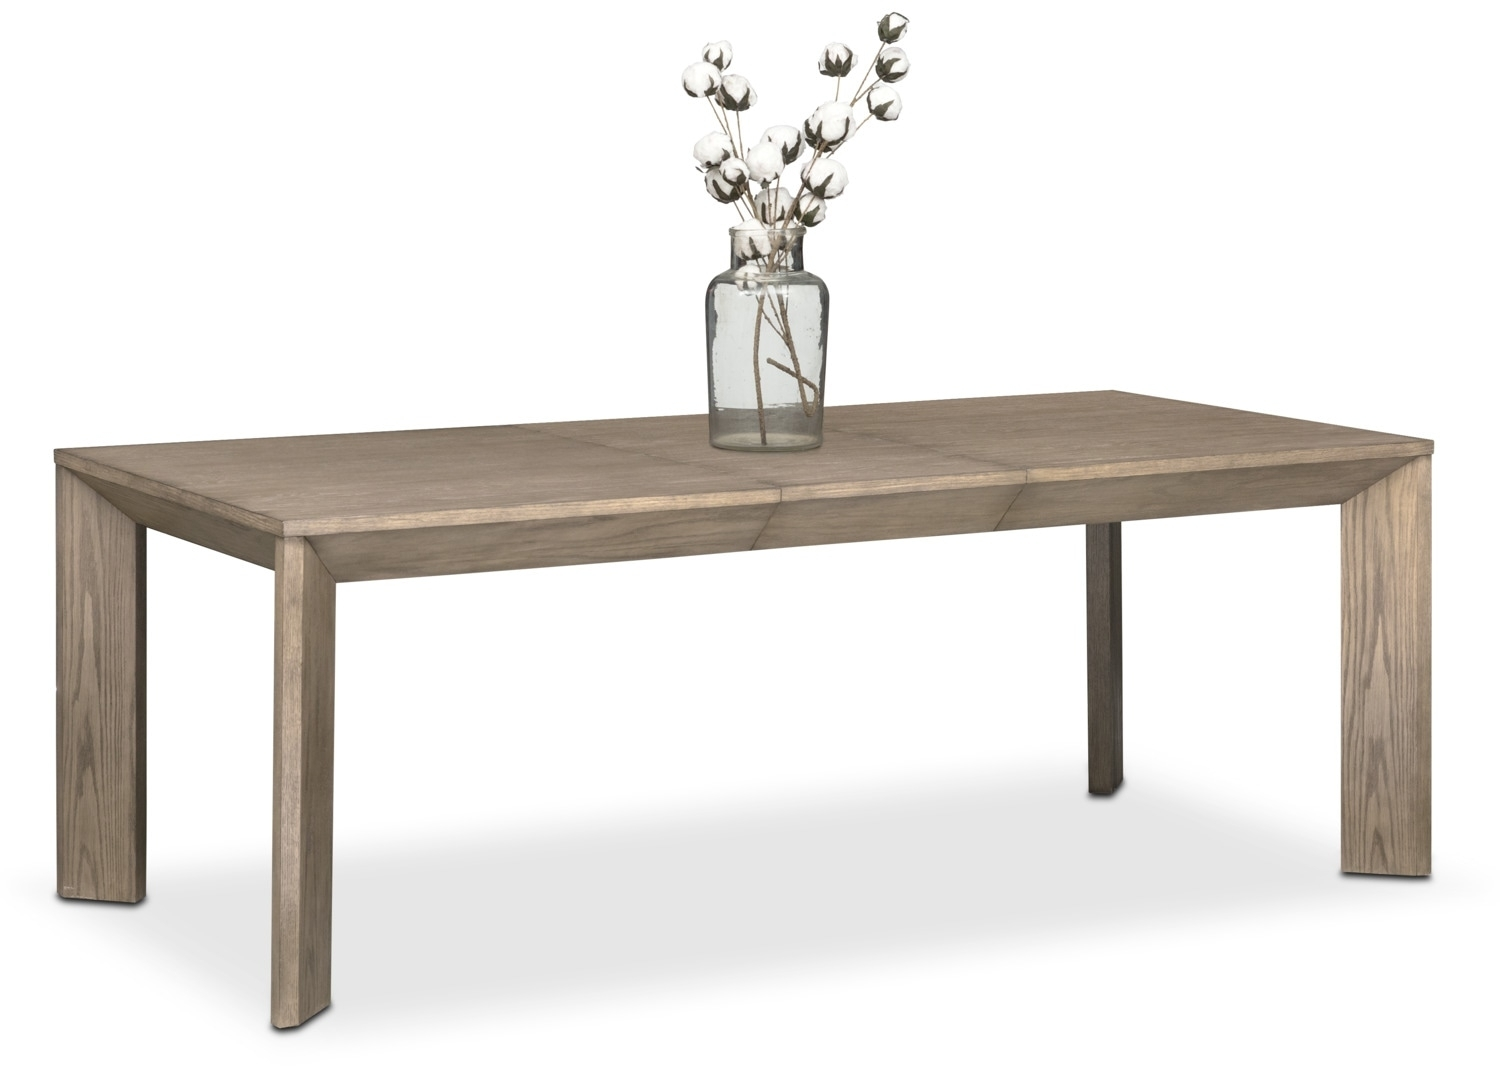 Gavin Table – Graystone | American Signature Furniture Within Most Popular Gavin Dining Tables (Photo 6 of 20)